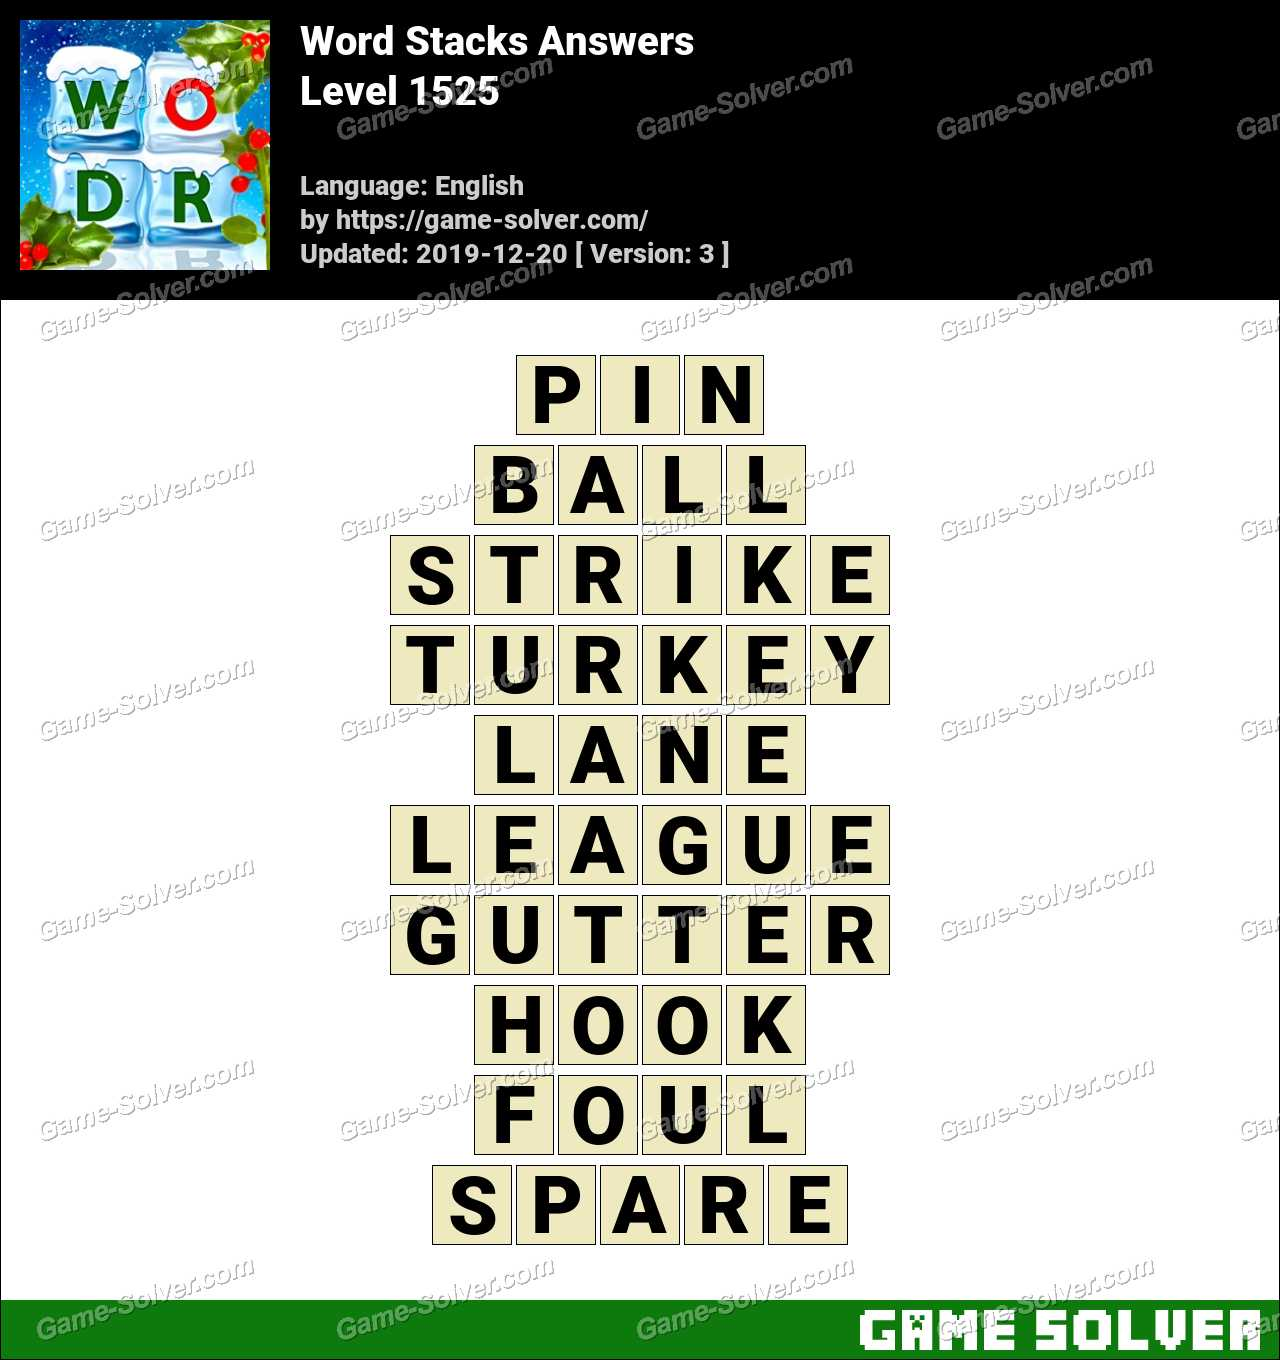 Word Stacks Level 1525 Answers